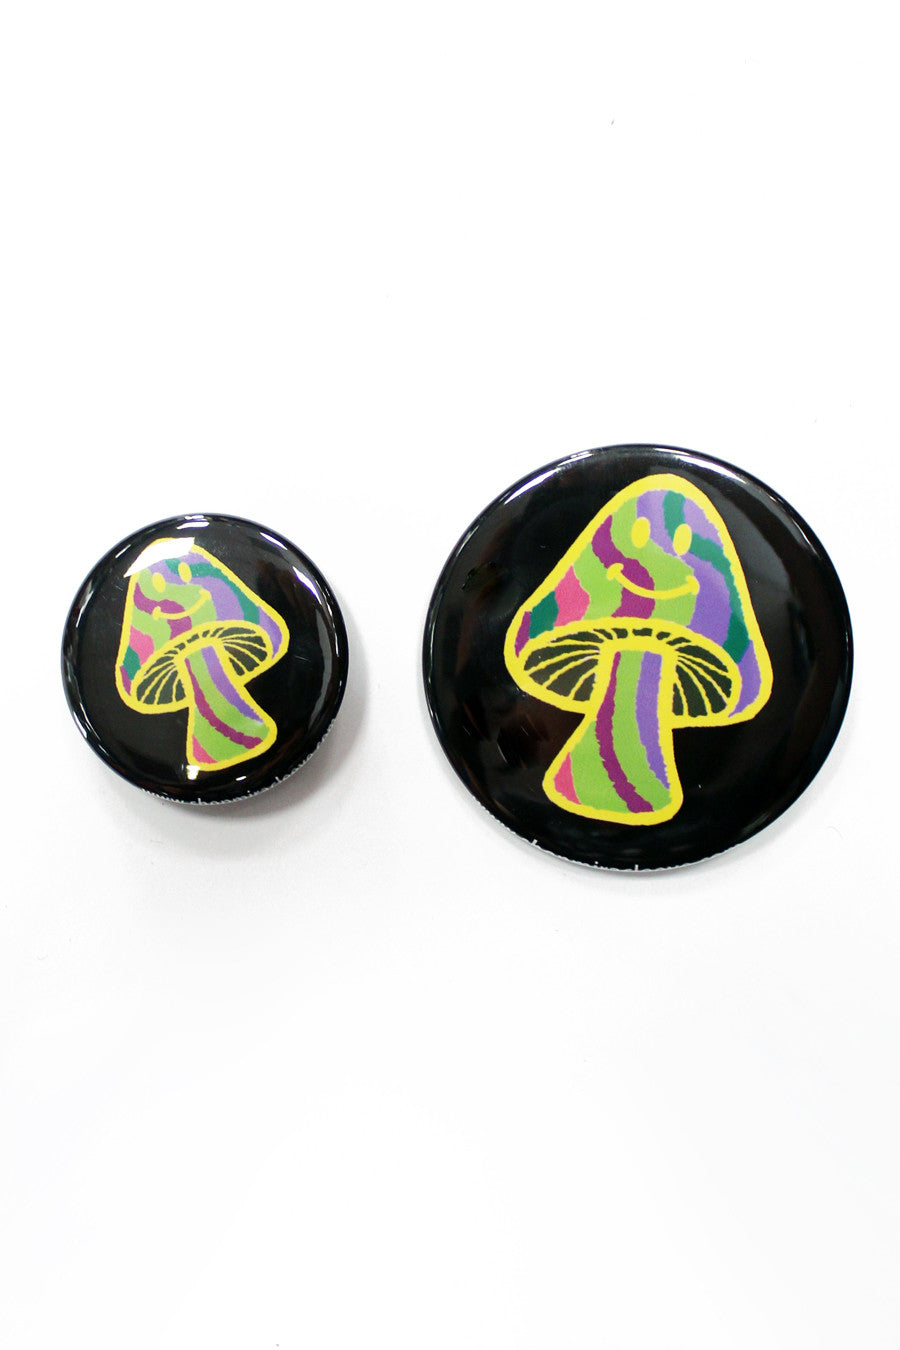 Magic Shroom Button in Black